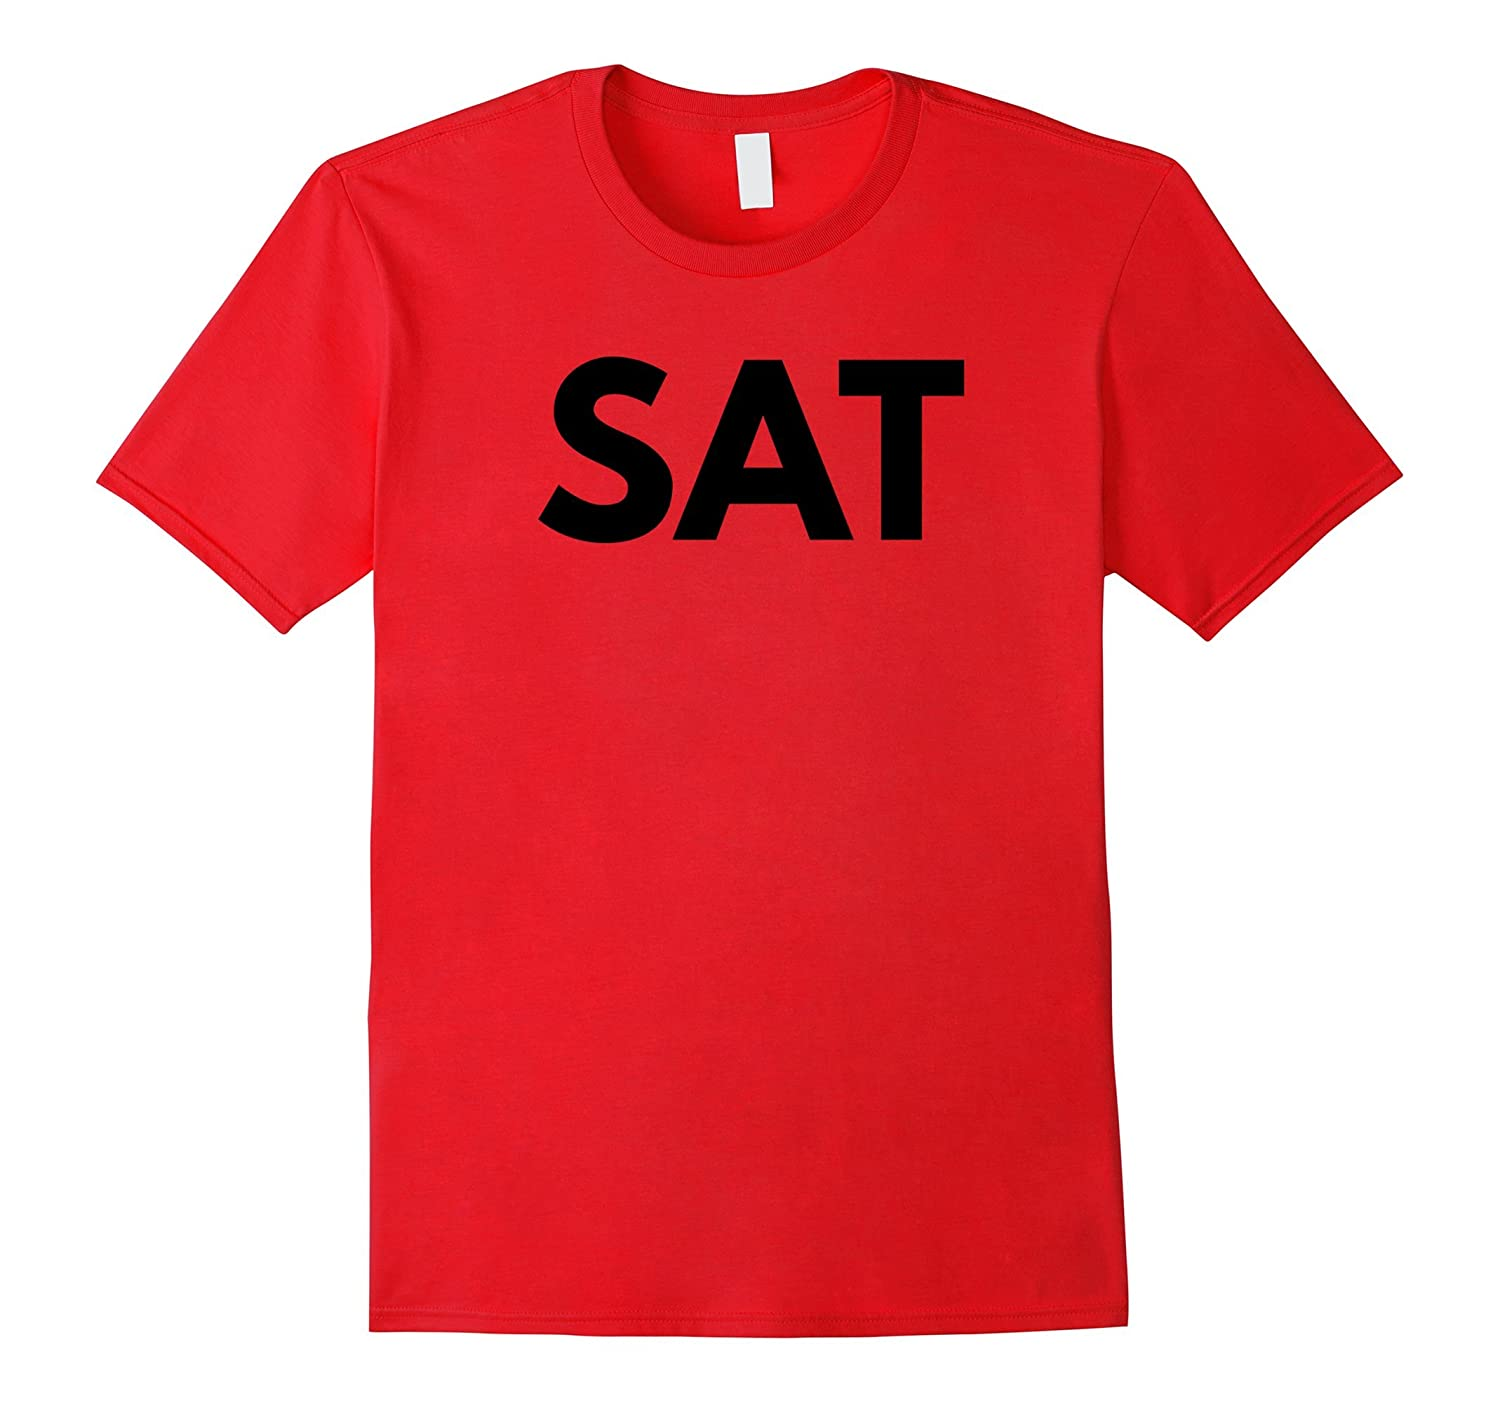 Saturday T-Shirt Days of the Week T-Shirts, Costume, Etc-T-Shirt